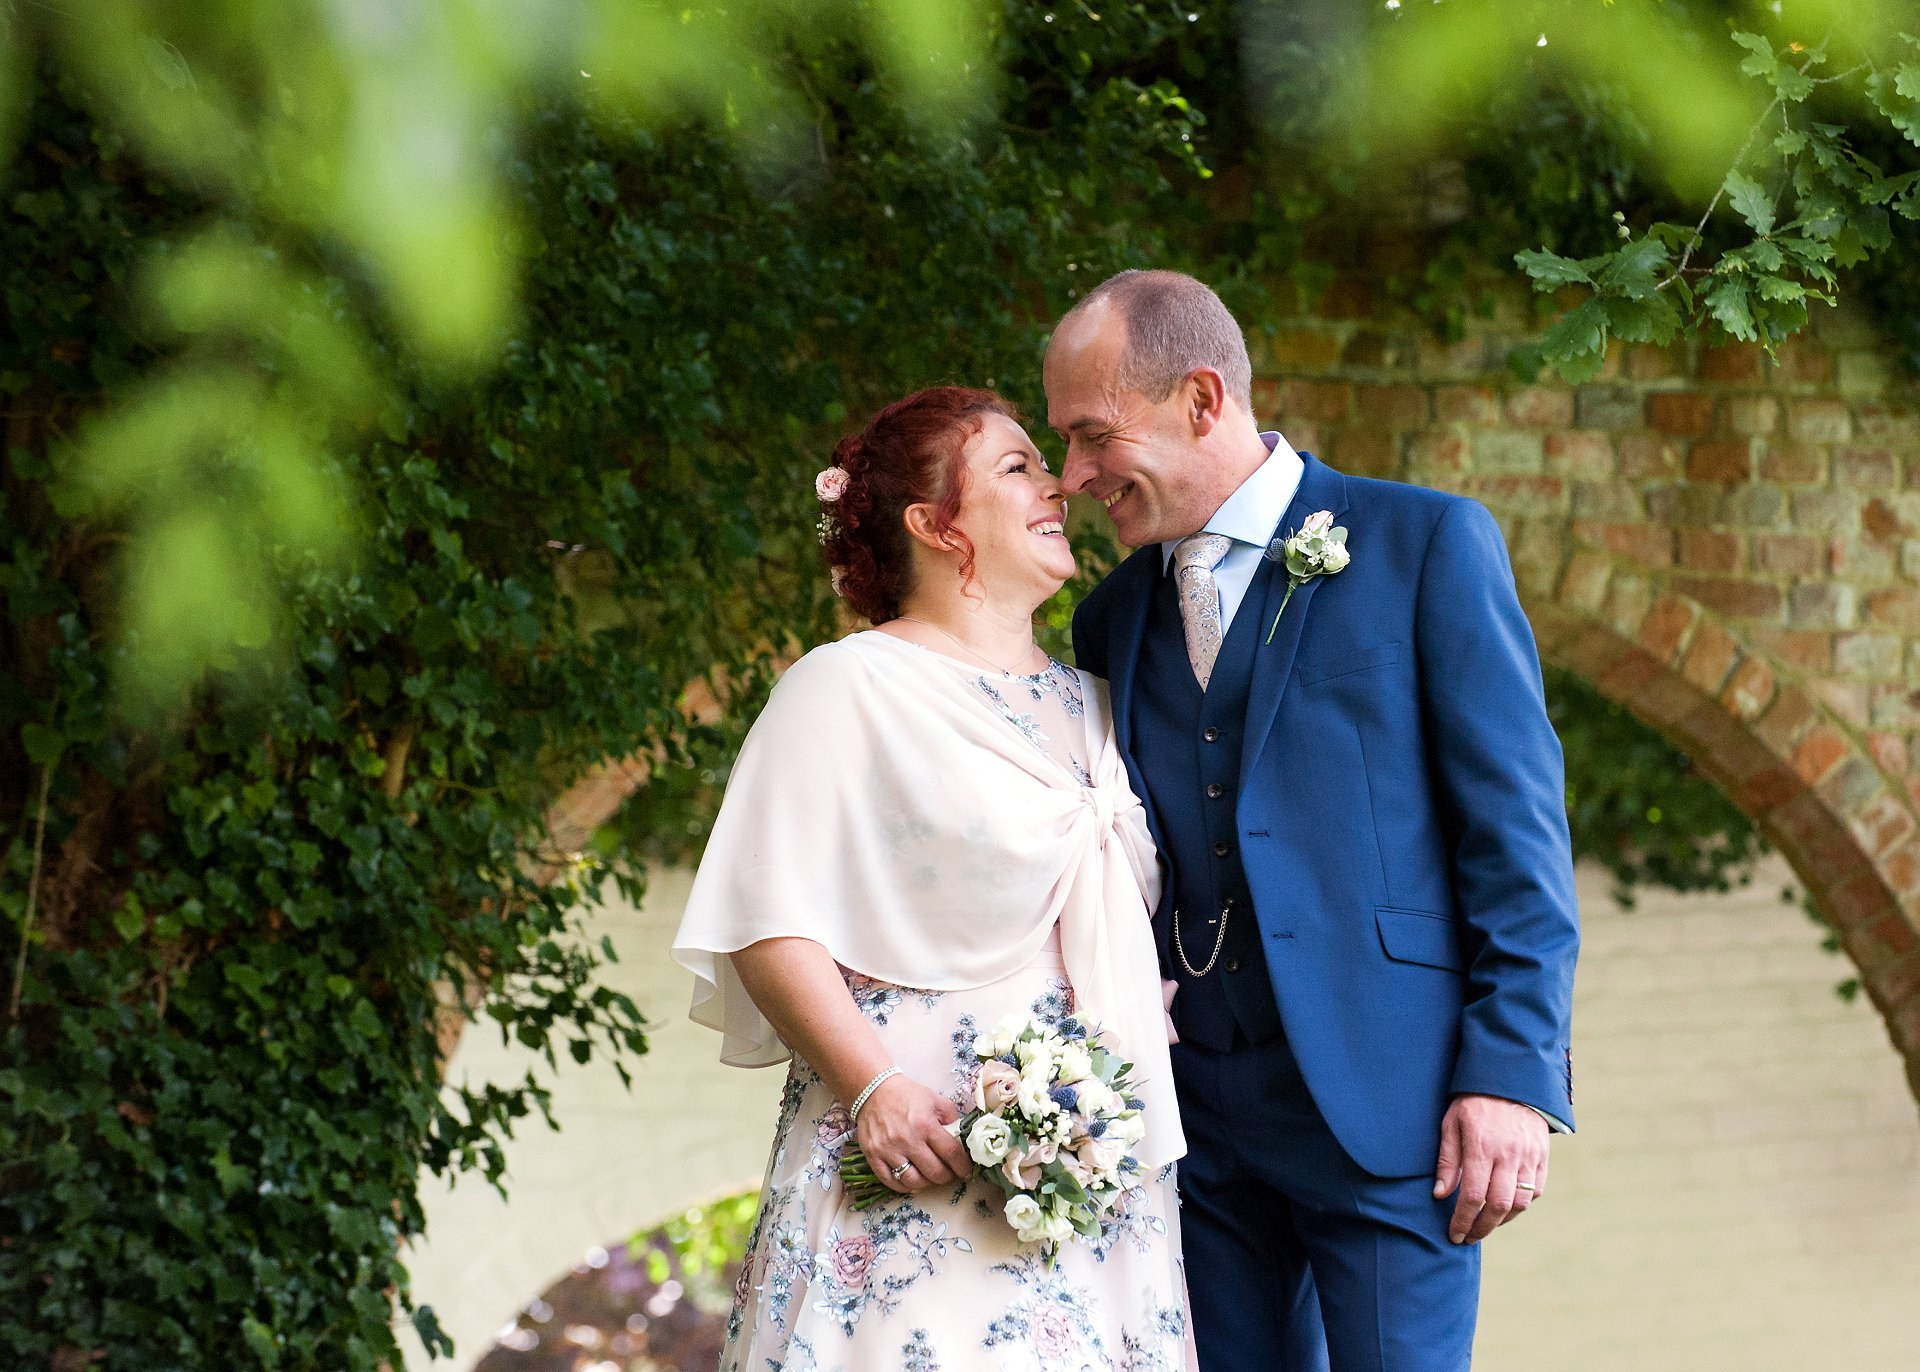 A bride and groom celebrate their wedding day at Ghyll Manor near Horsham in West Sussex